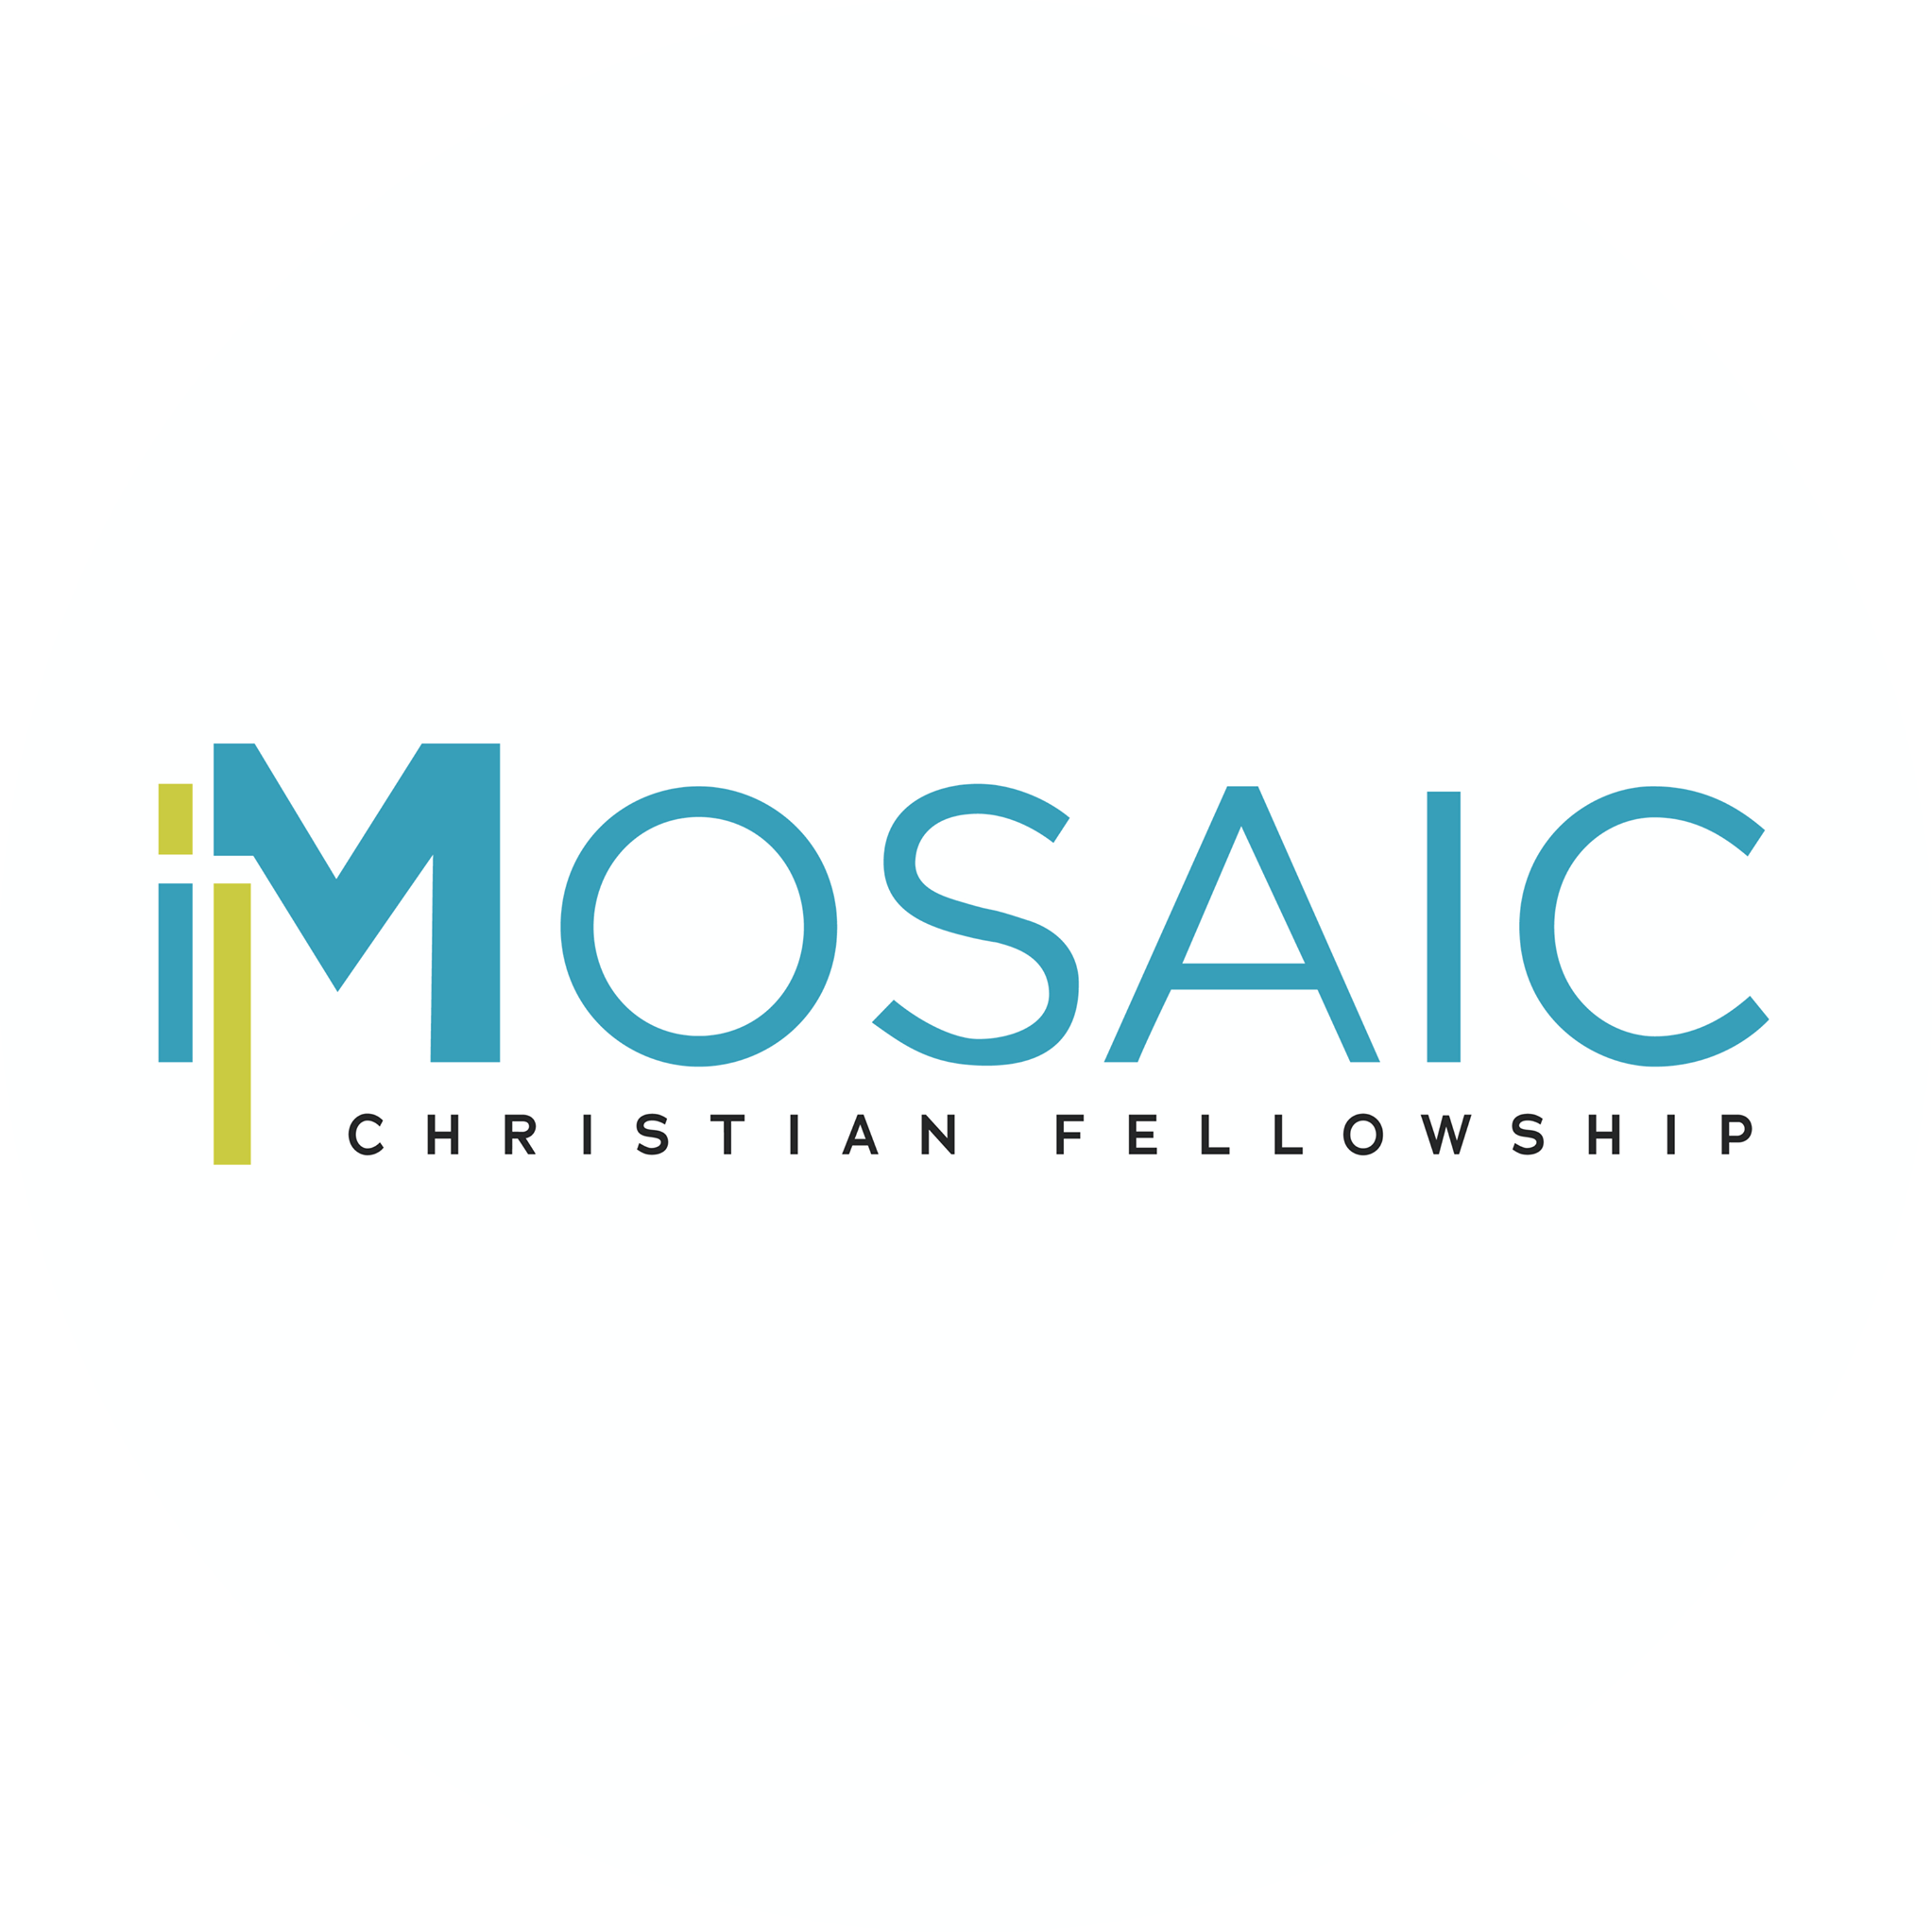 Mosaic Christian Fellowship